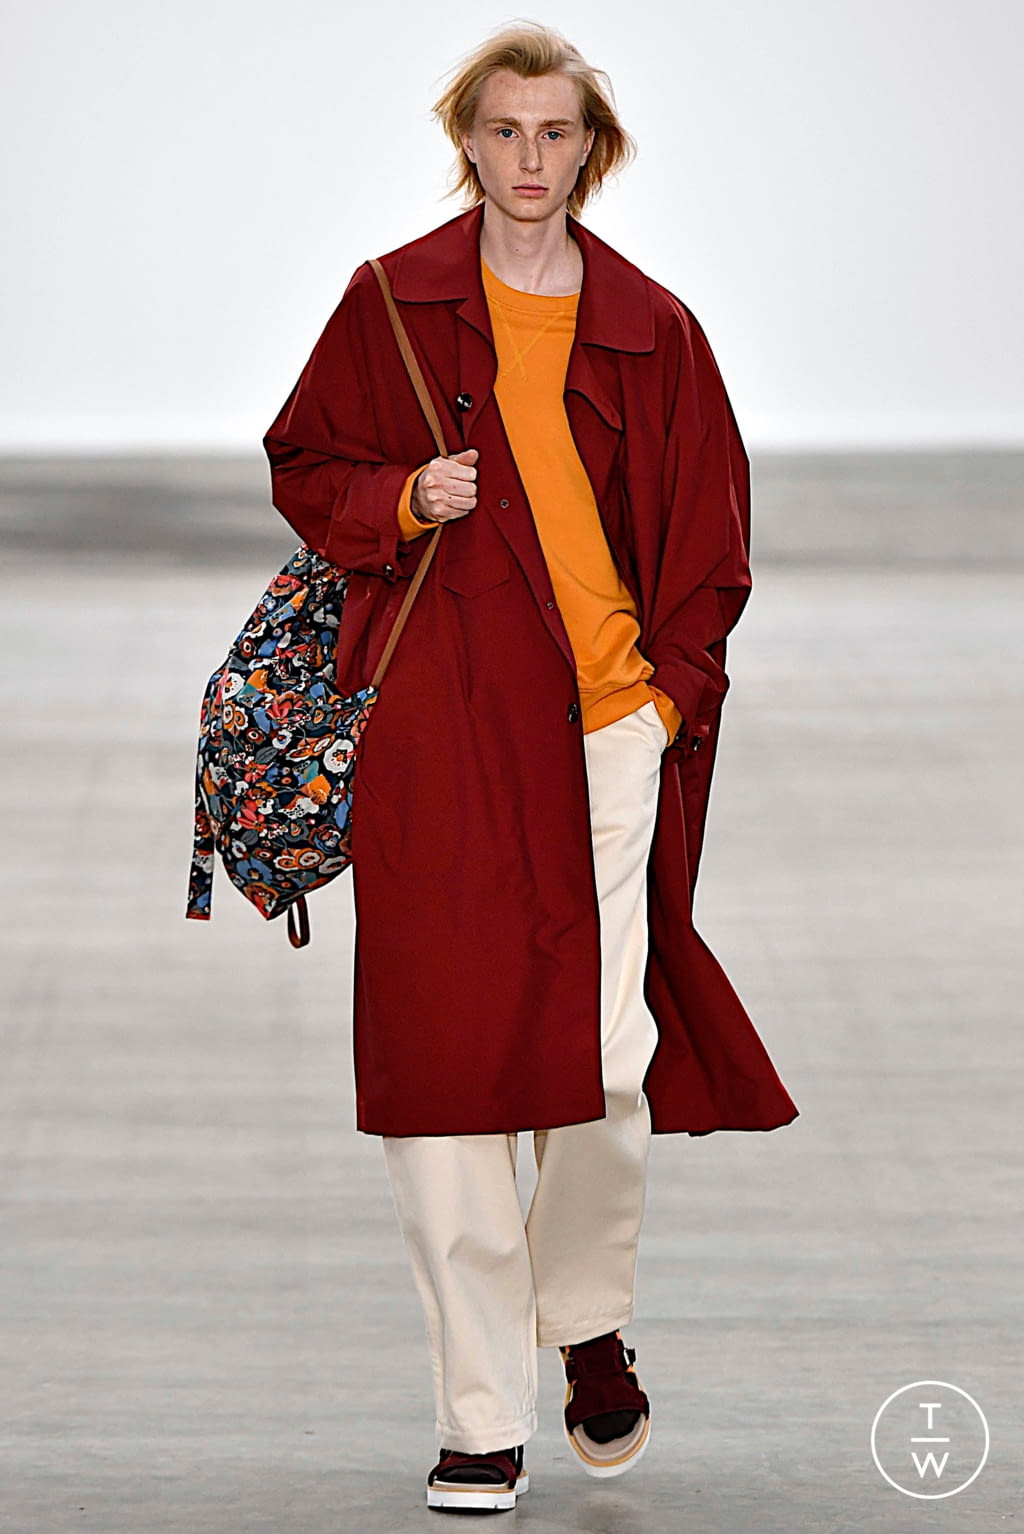 Fashion Week London Spring/Summer 2020 look 4 de la collection E. Tautz menswear